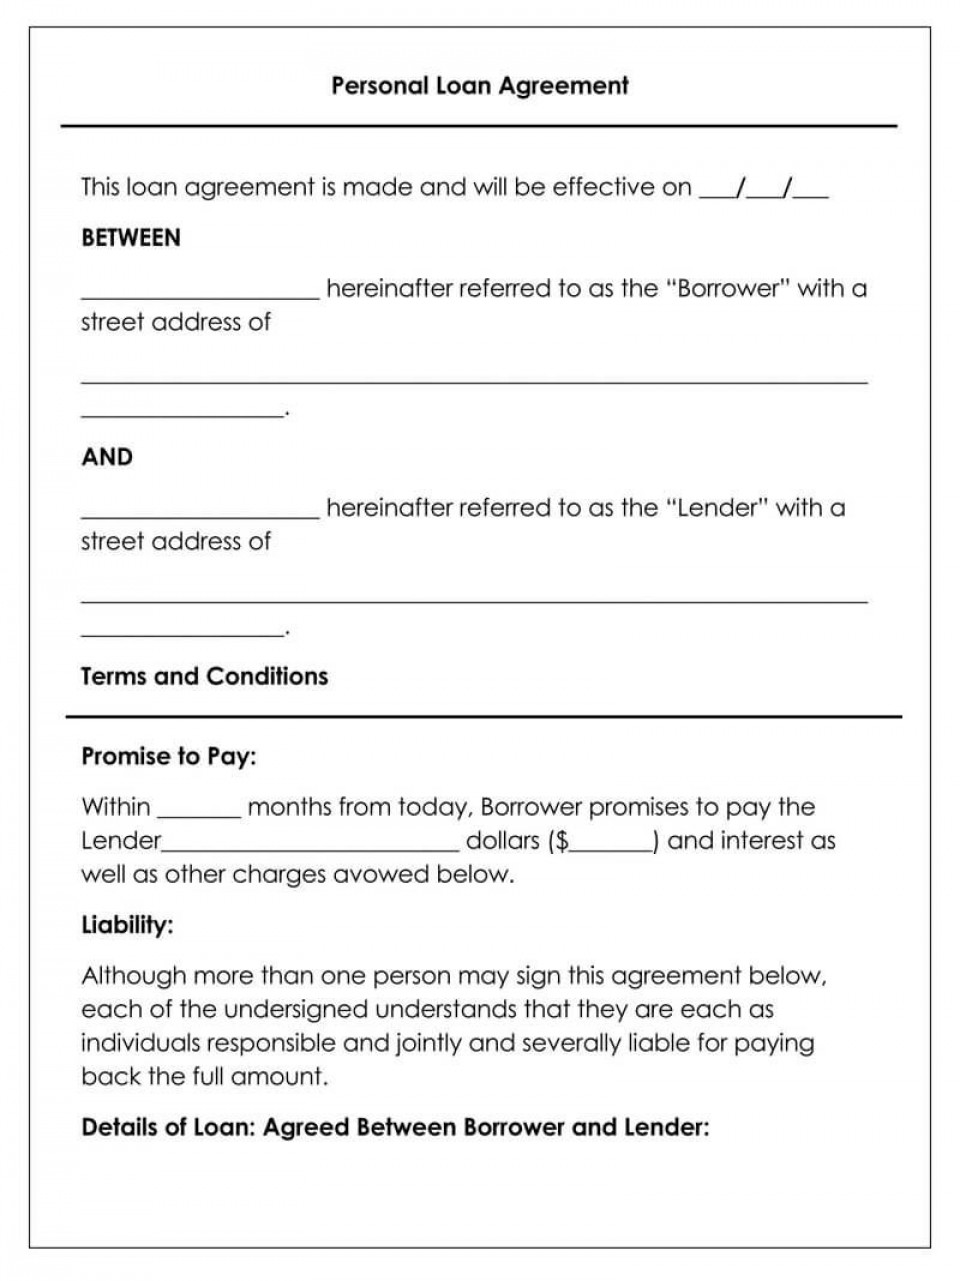 008 Fearsome Loan Agreement Template Free Image  Download Scotland Ontario Word960